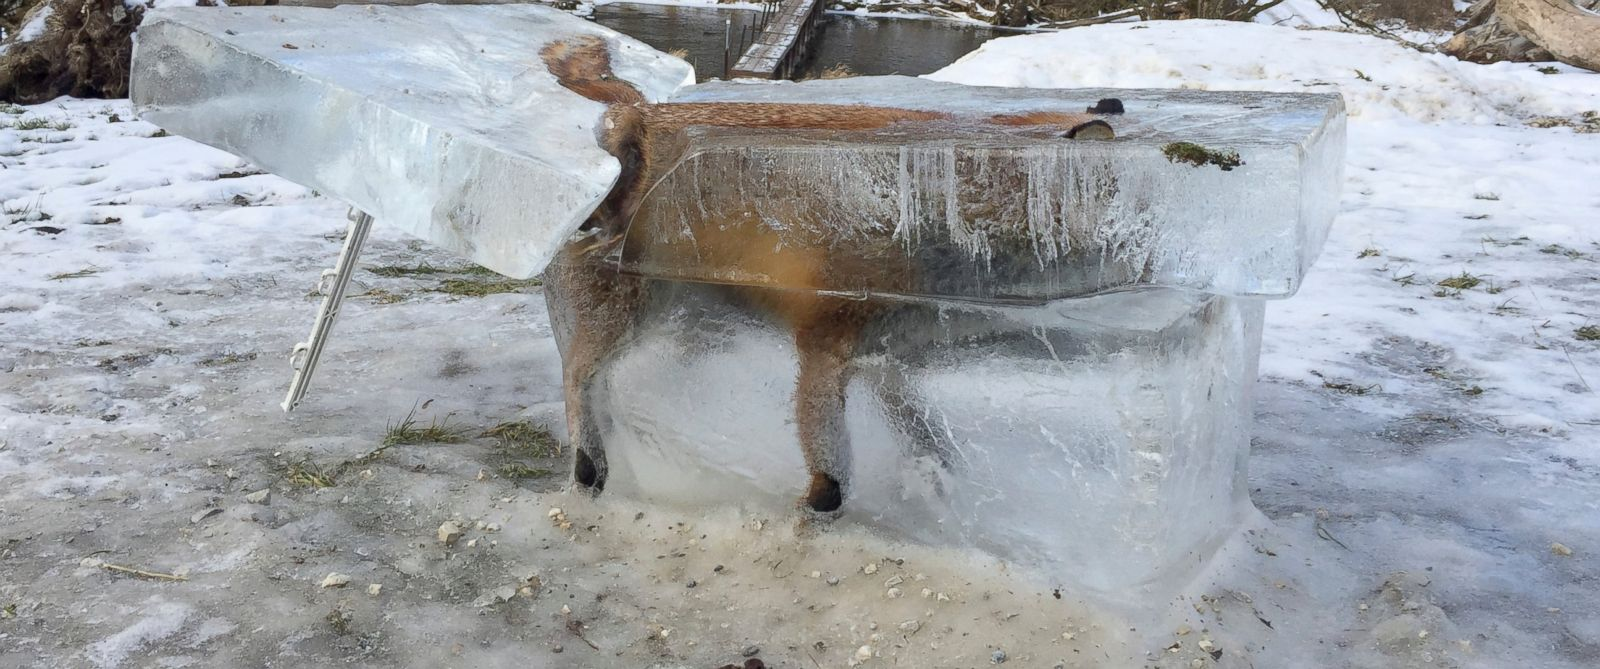 PHOTO: A block of ice containing a drowned fox who broke through the thin ice of the Danube river four days earlier sits on the bank of the Danube river in Fridingen, southern Germany, Jan. 13, 2017.